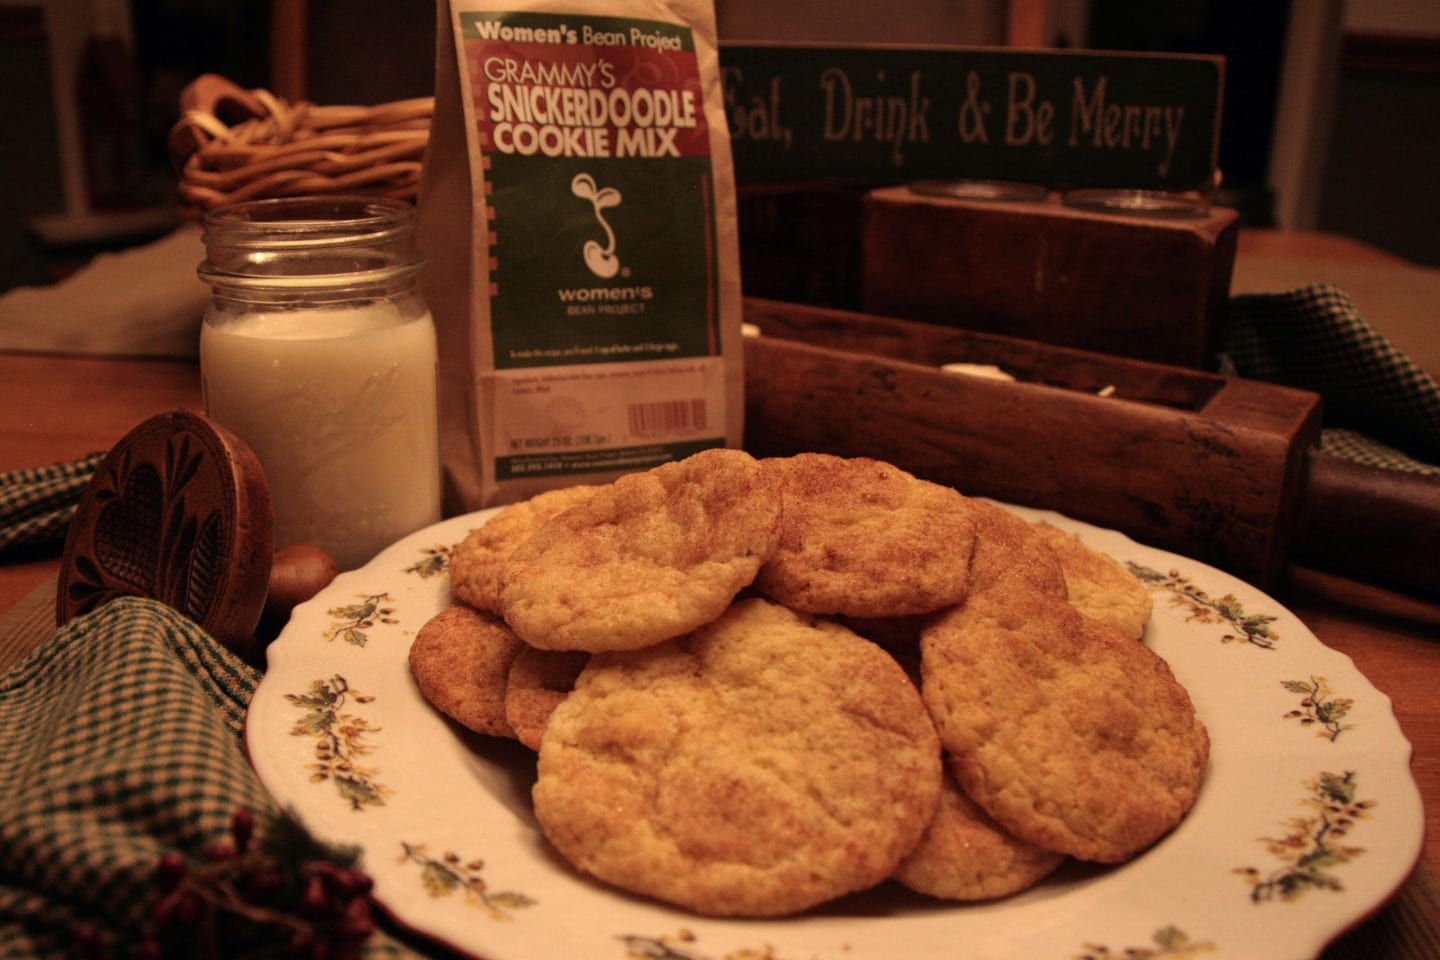 Women's Bean Project Grammys Snickerdoodle Cookies